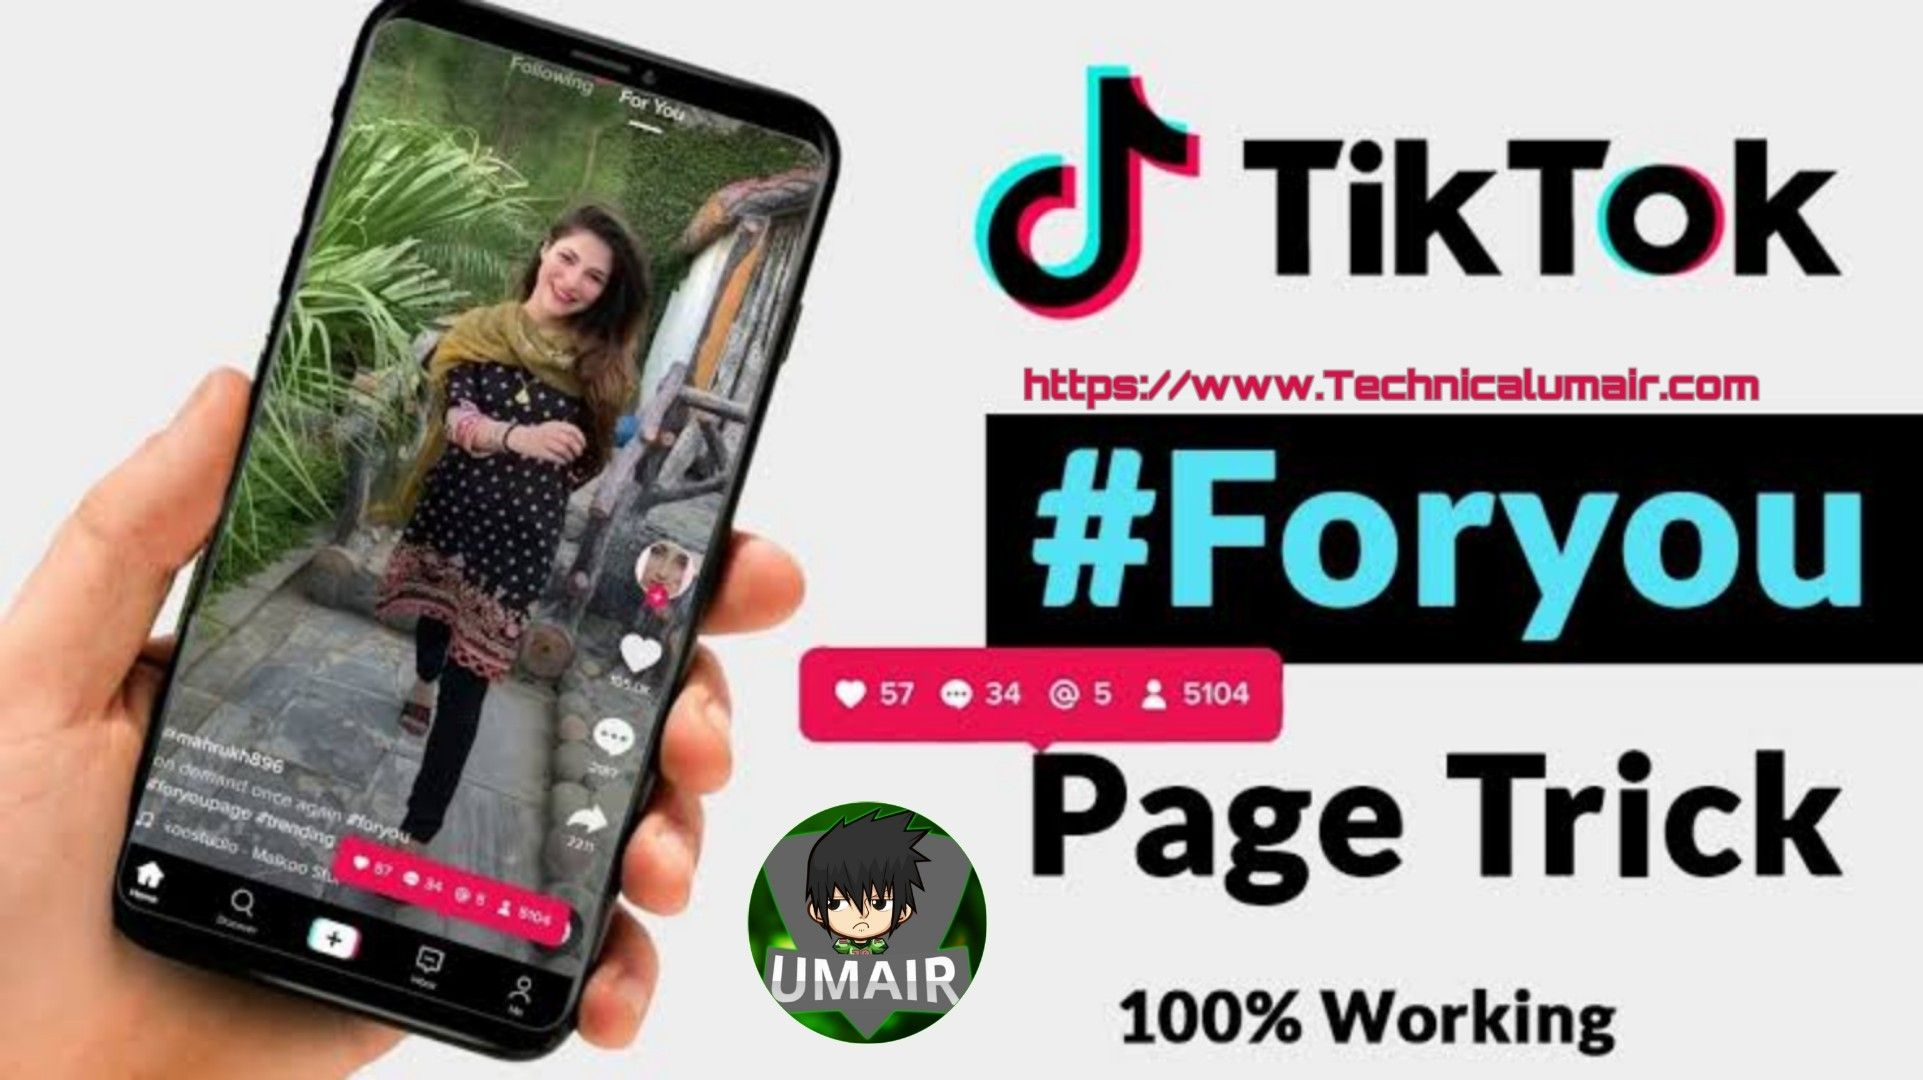 How To Viral Your Tiktok Videos On Foryou Pages Tiktok New Viral Trick Youtube Trick Some Body